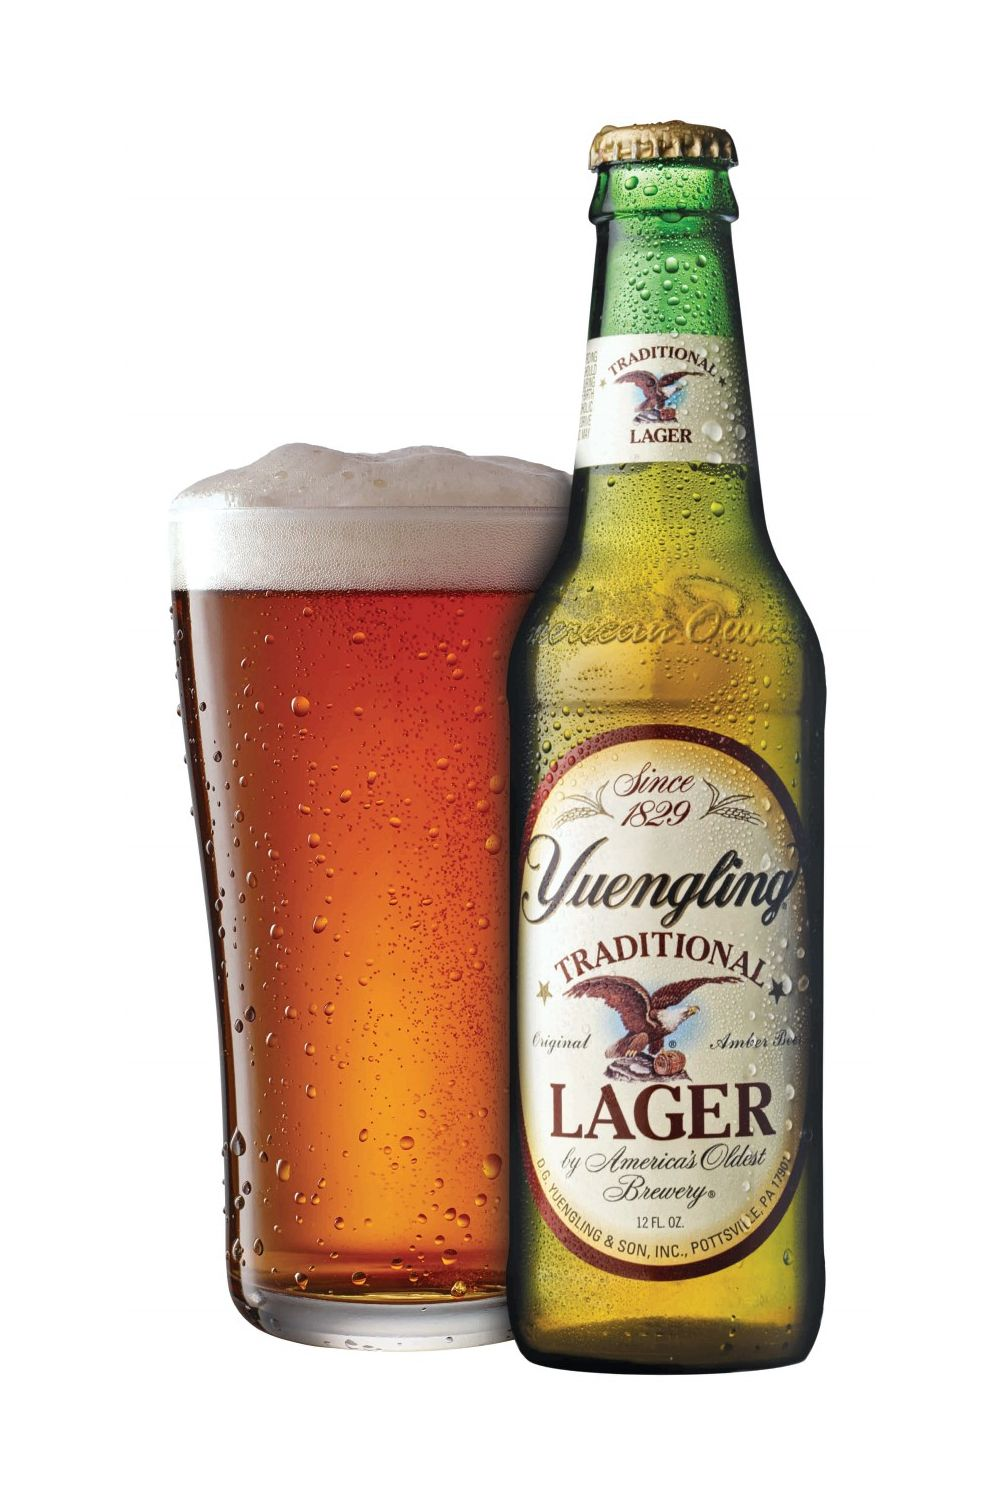 """<p>A bar and liquor storestaple,Yuengling is an old faithful beer staple. And if you're counting calories, you can't go wrong with a classic, refreshing lager that's cheaper than most.</p><p><strong data-redactor-tag=""""strong"""">Yuengling Lager (4.5% ABV), 128 calories</strong></p>"""